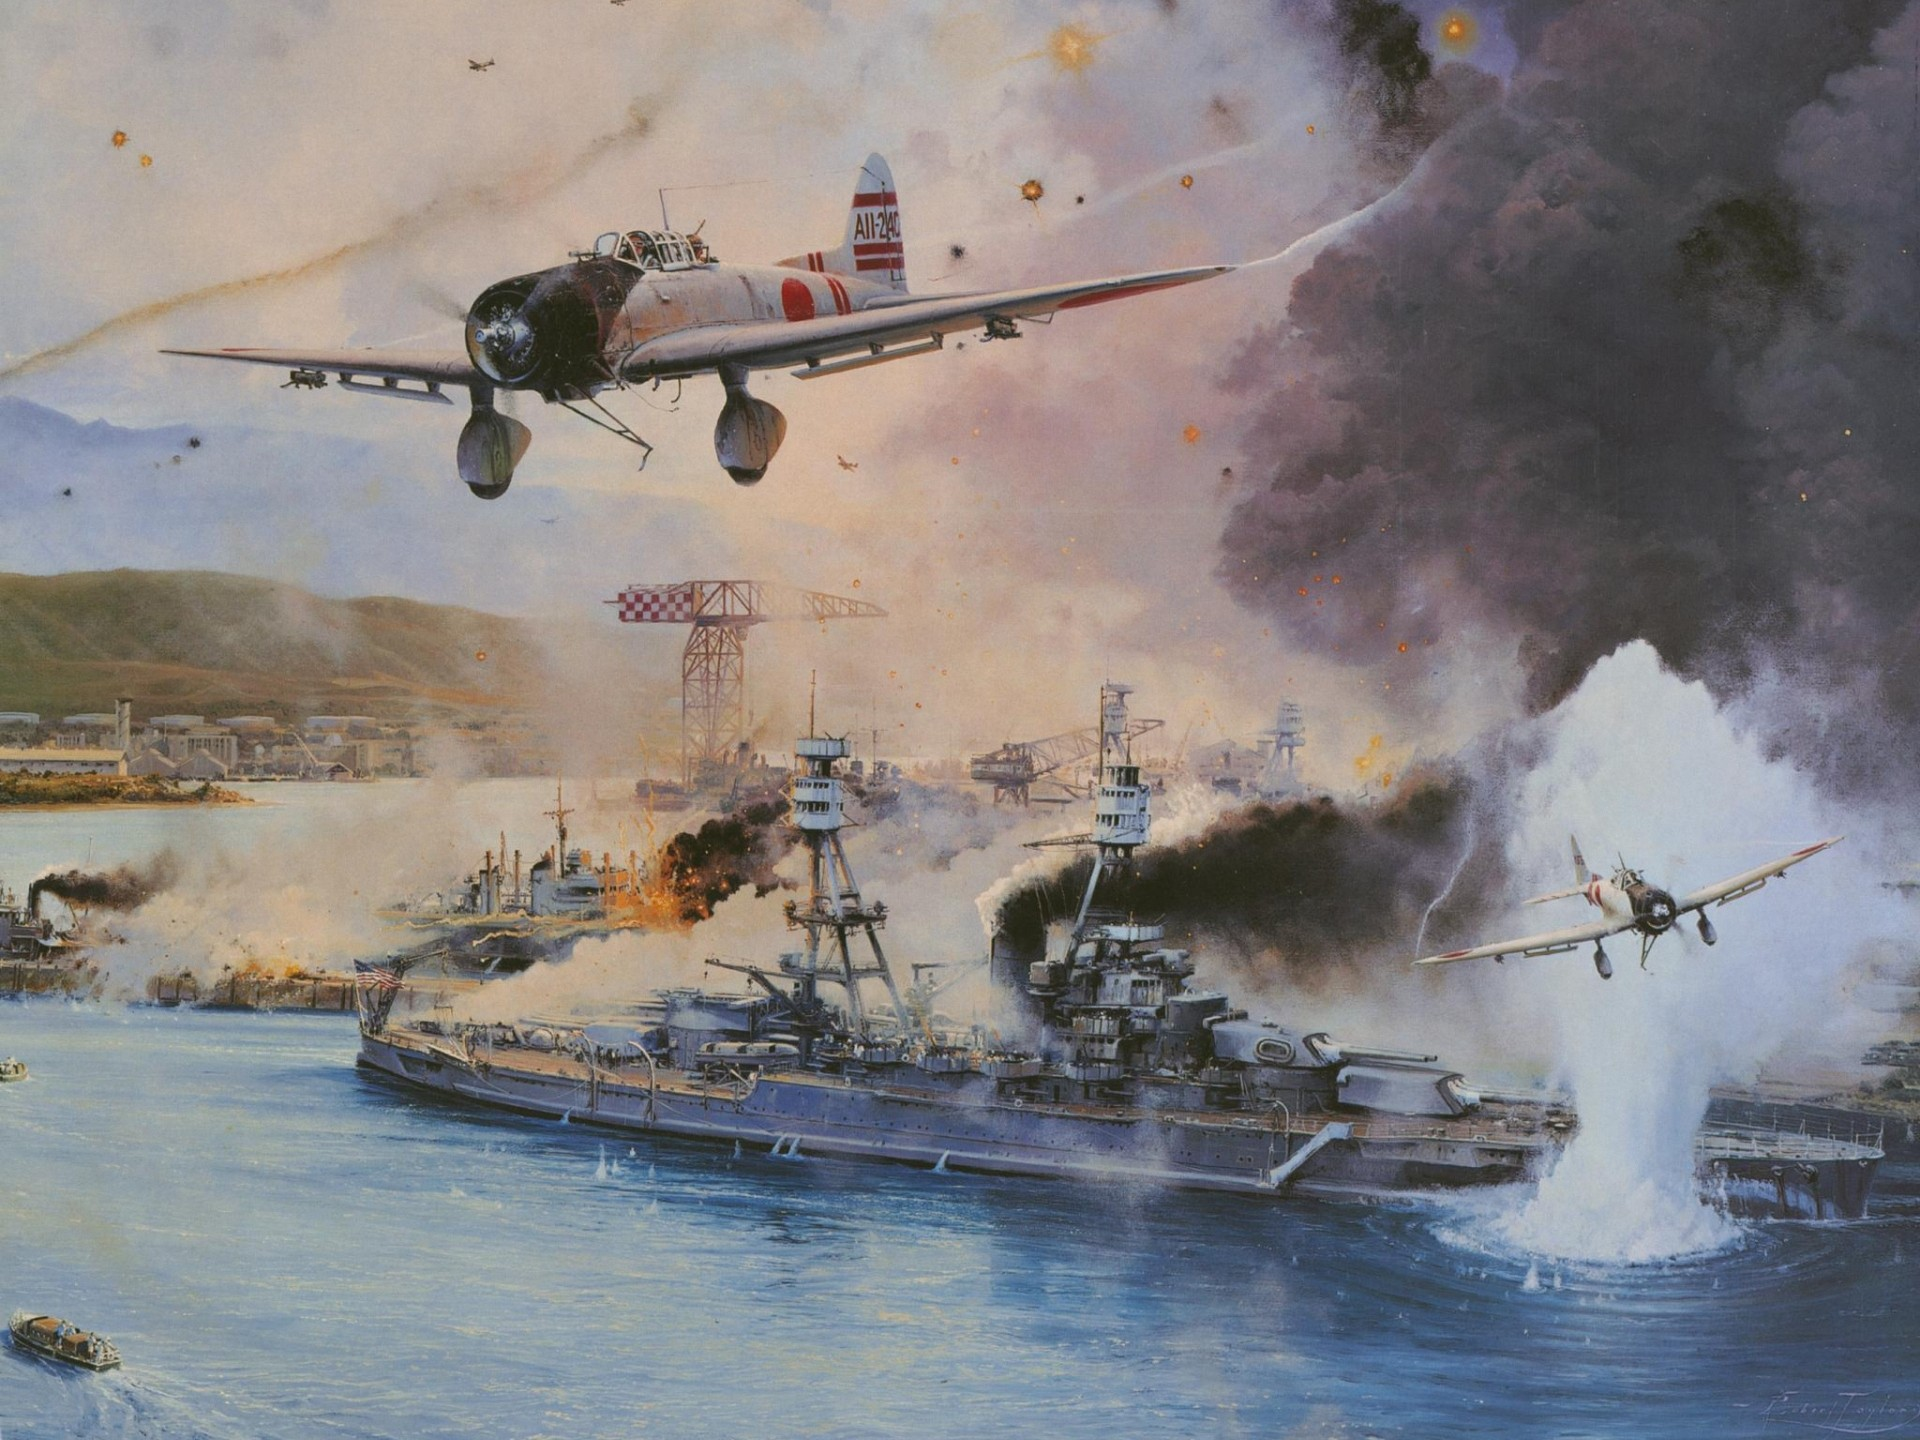 essay pearl harbor attack A pearl harbor essay should be about the japanese attack on pearl harbor a pearl harbor essay should have information on the attack pearl harbor essay should also discuss the damage caused by this attack on america by the japanese.